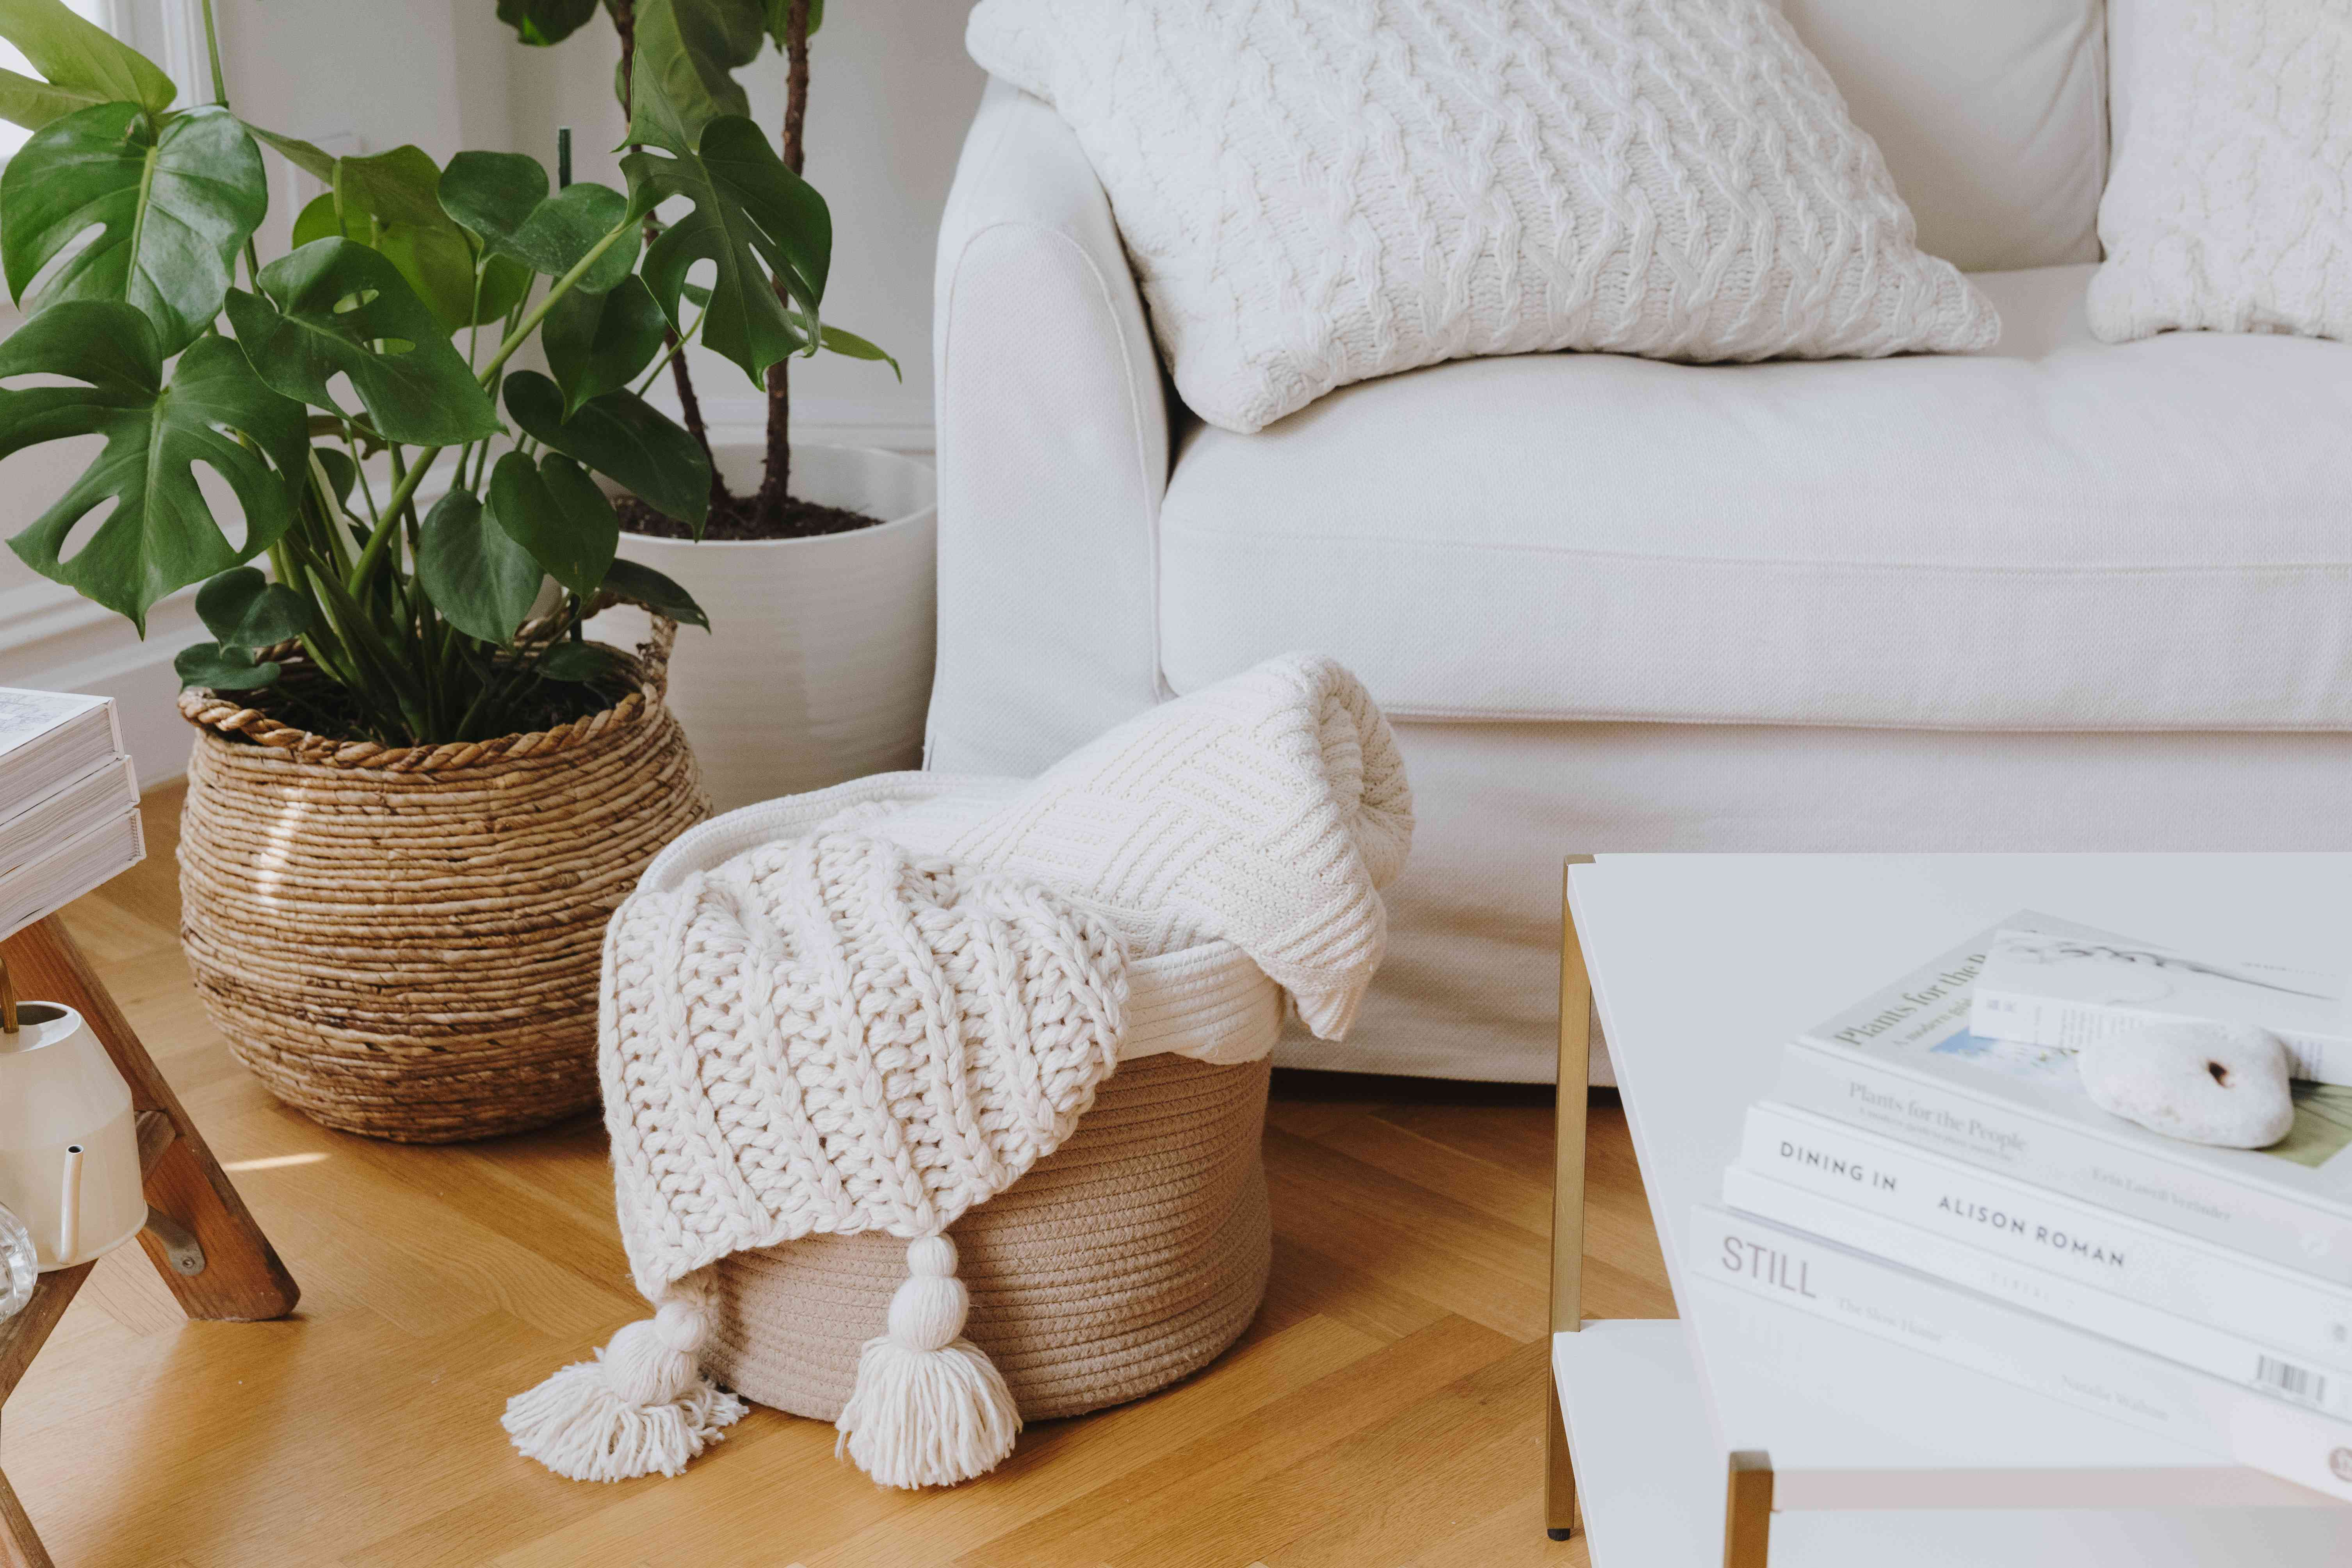 chunky knit blanket and pillow